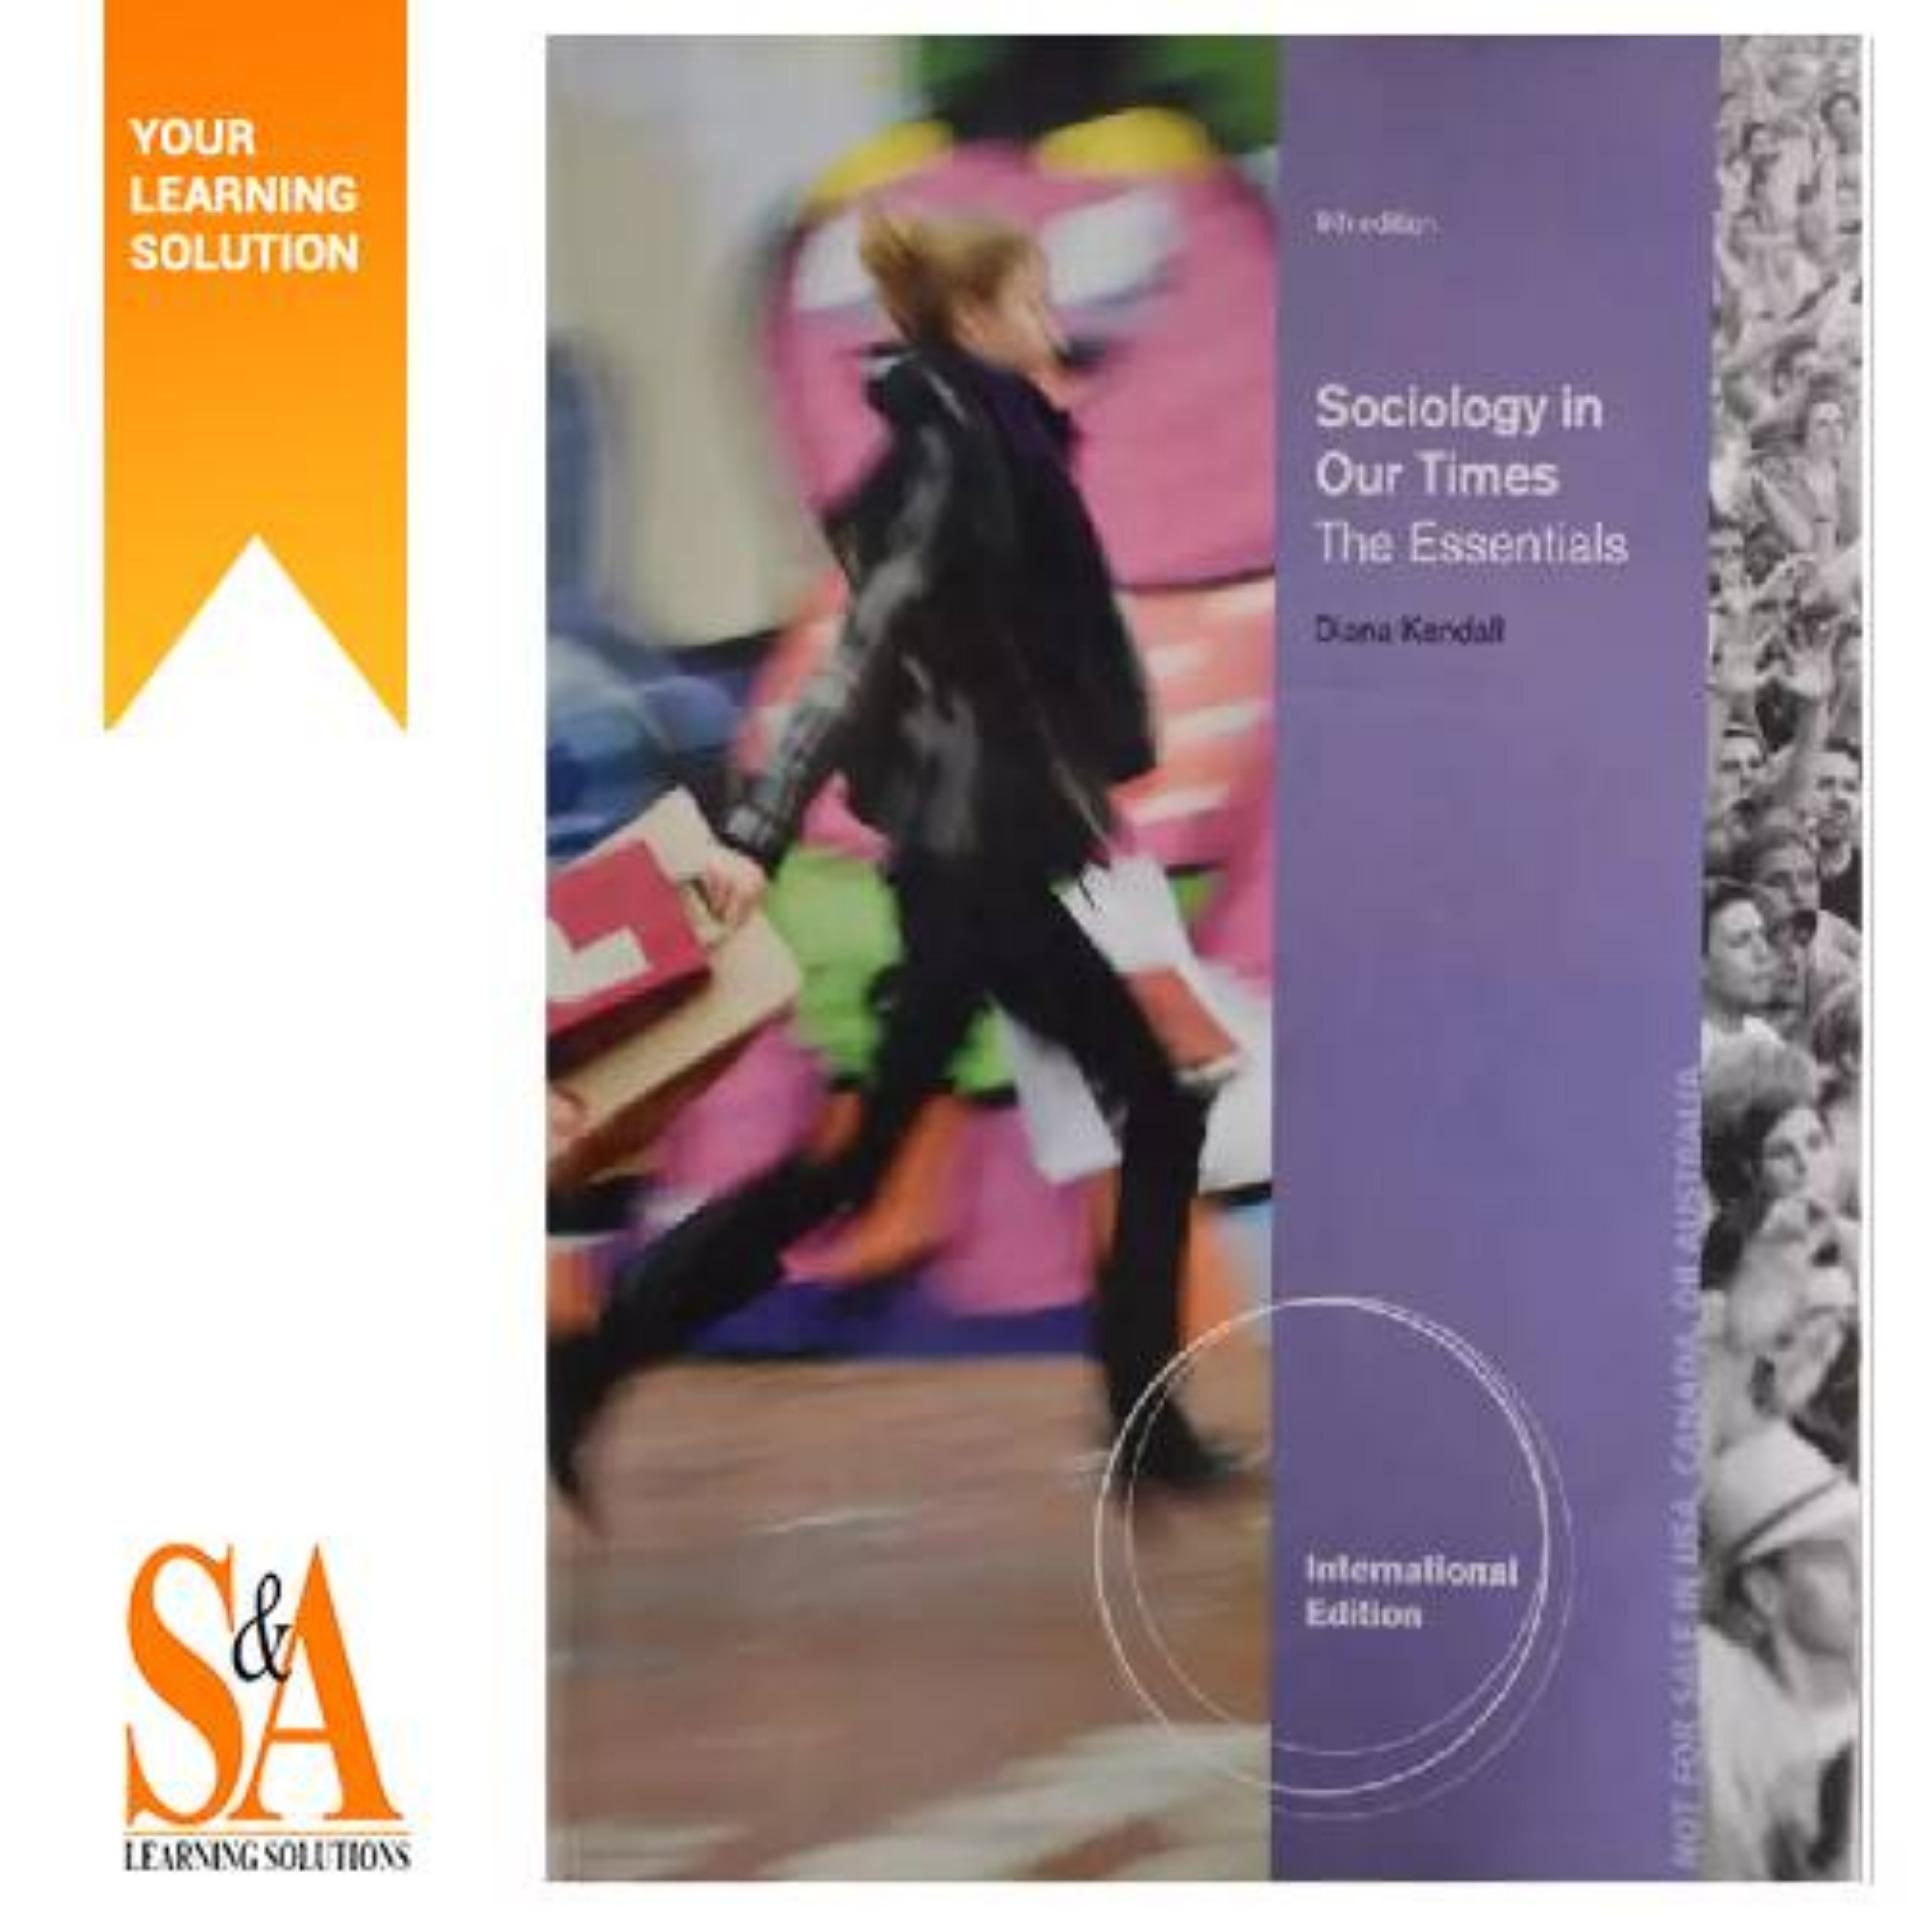 Sociology In Our Times: The Essentials Paperback – International Edition By S&a Learning Solutions.